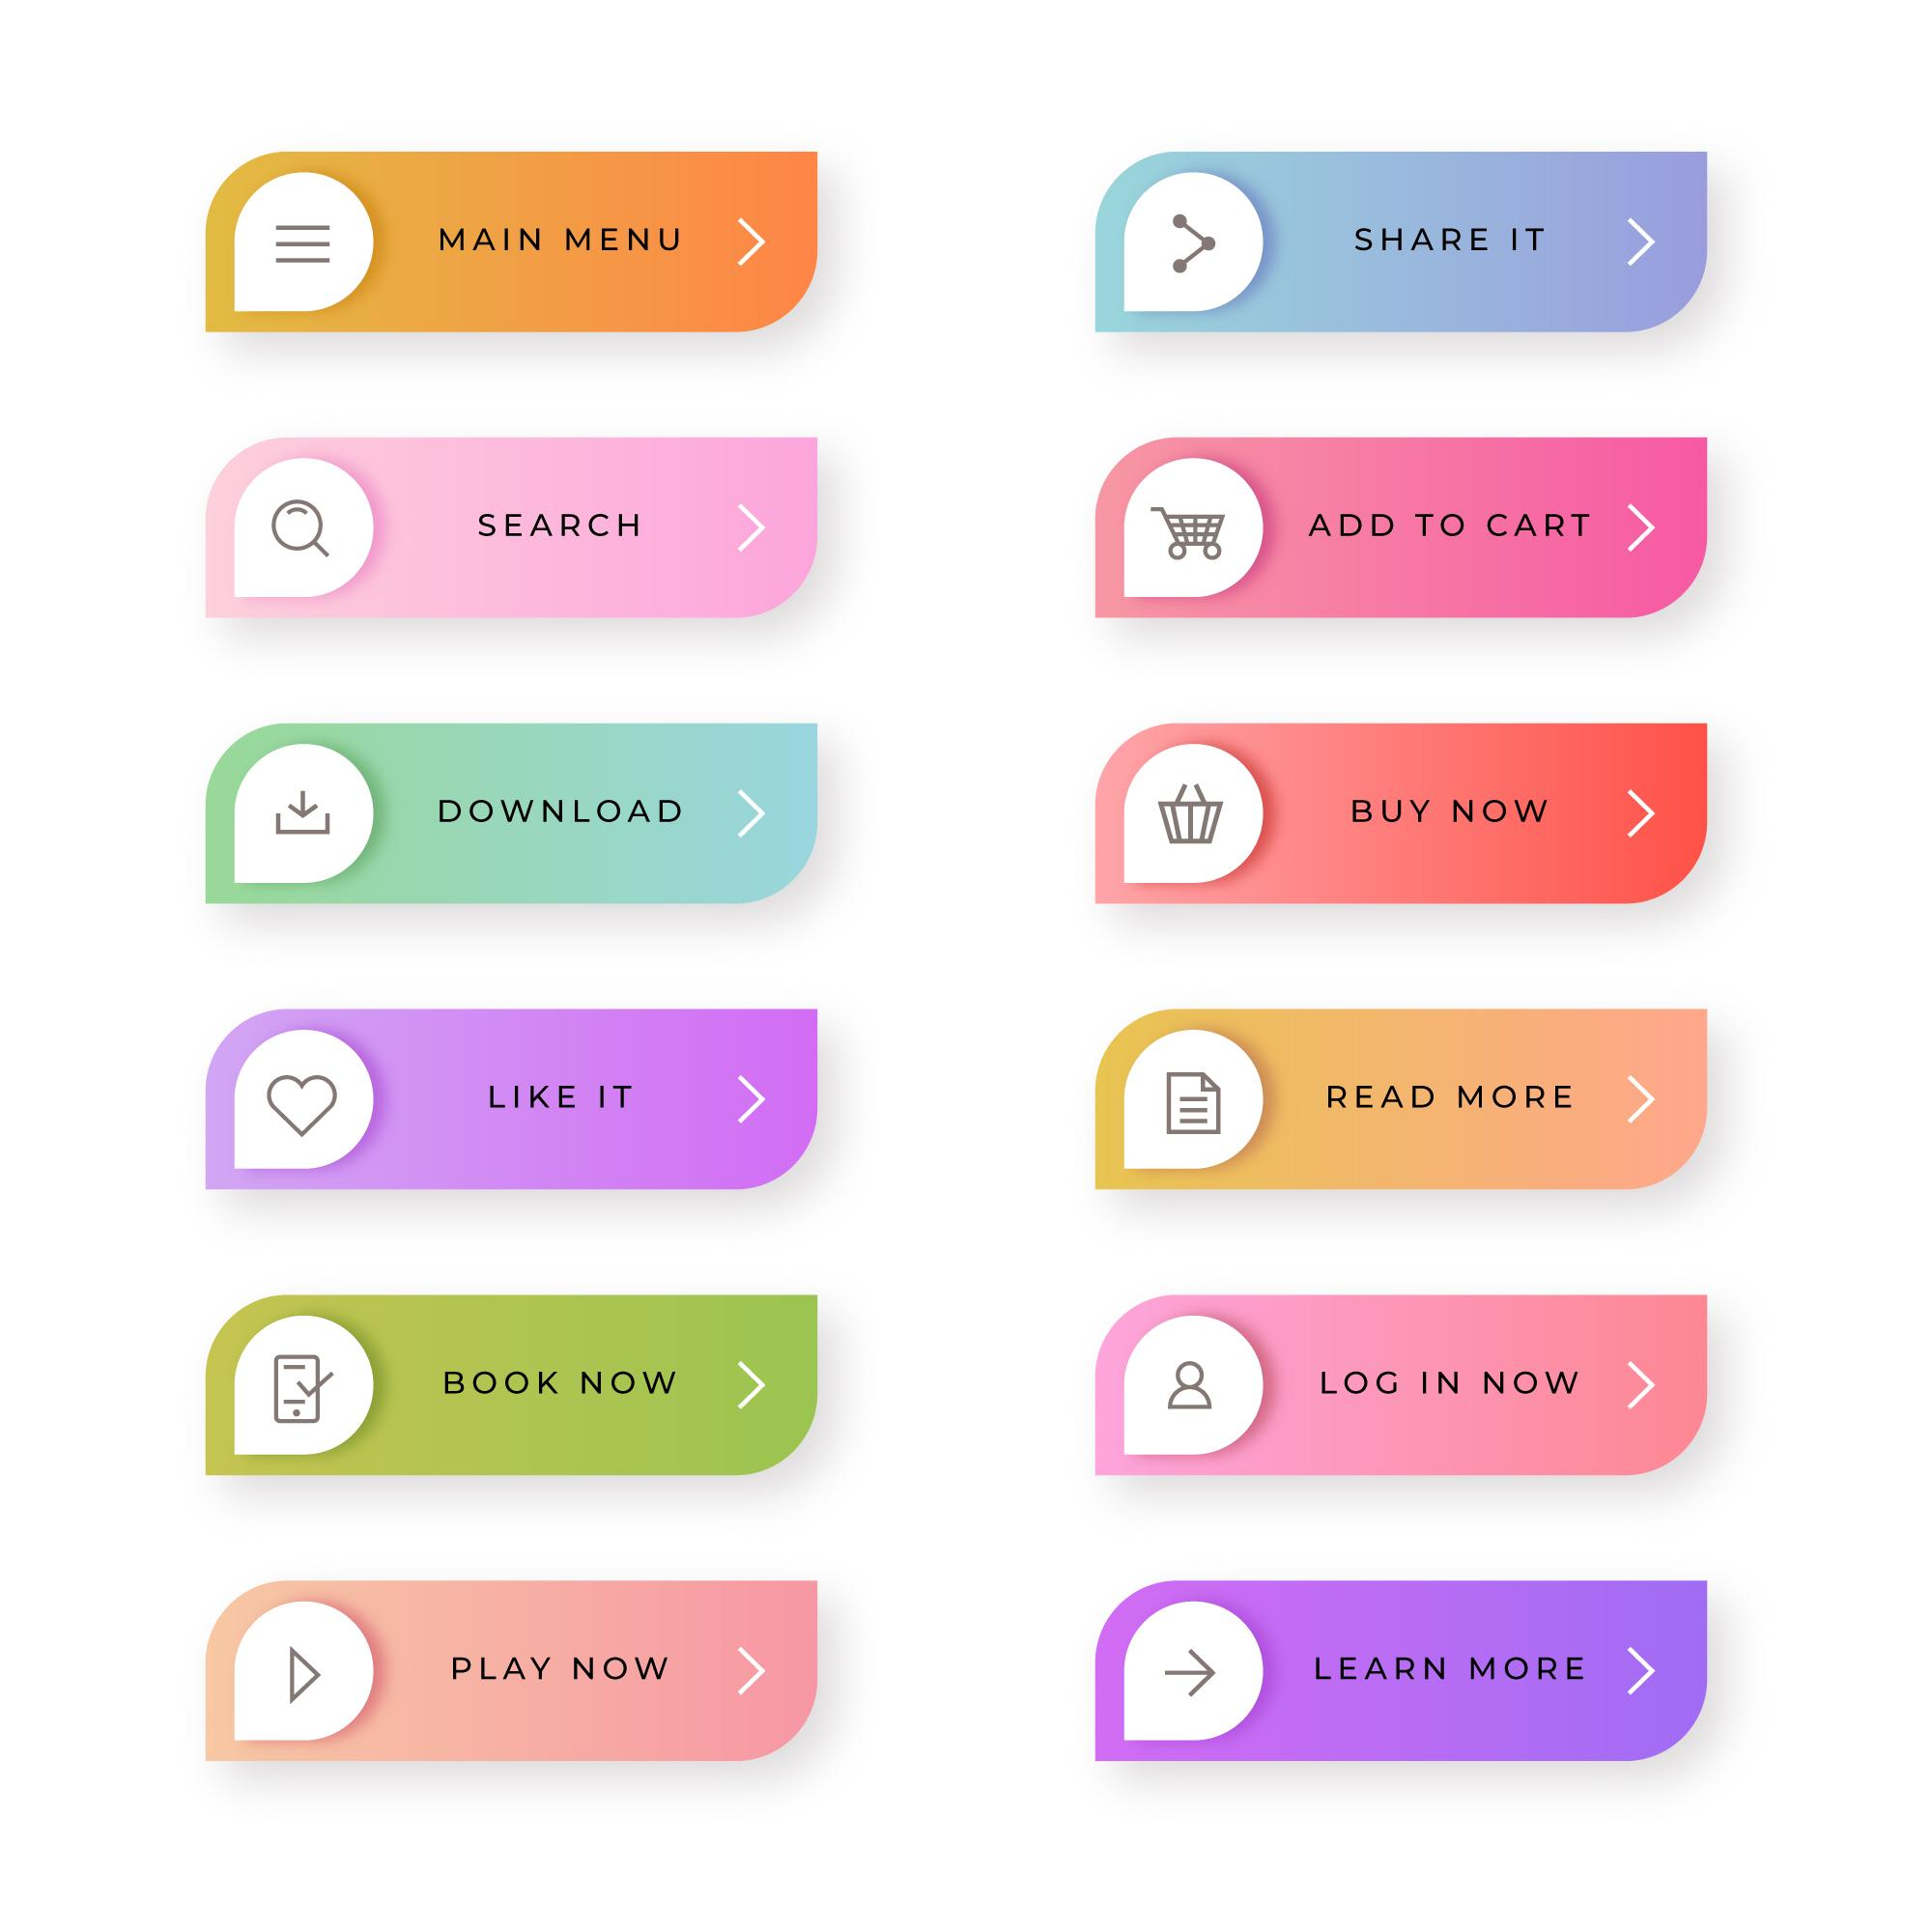 Eye-Catching: Best Practices for Using Call-to-Action Buttons